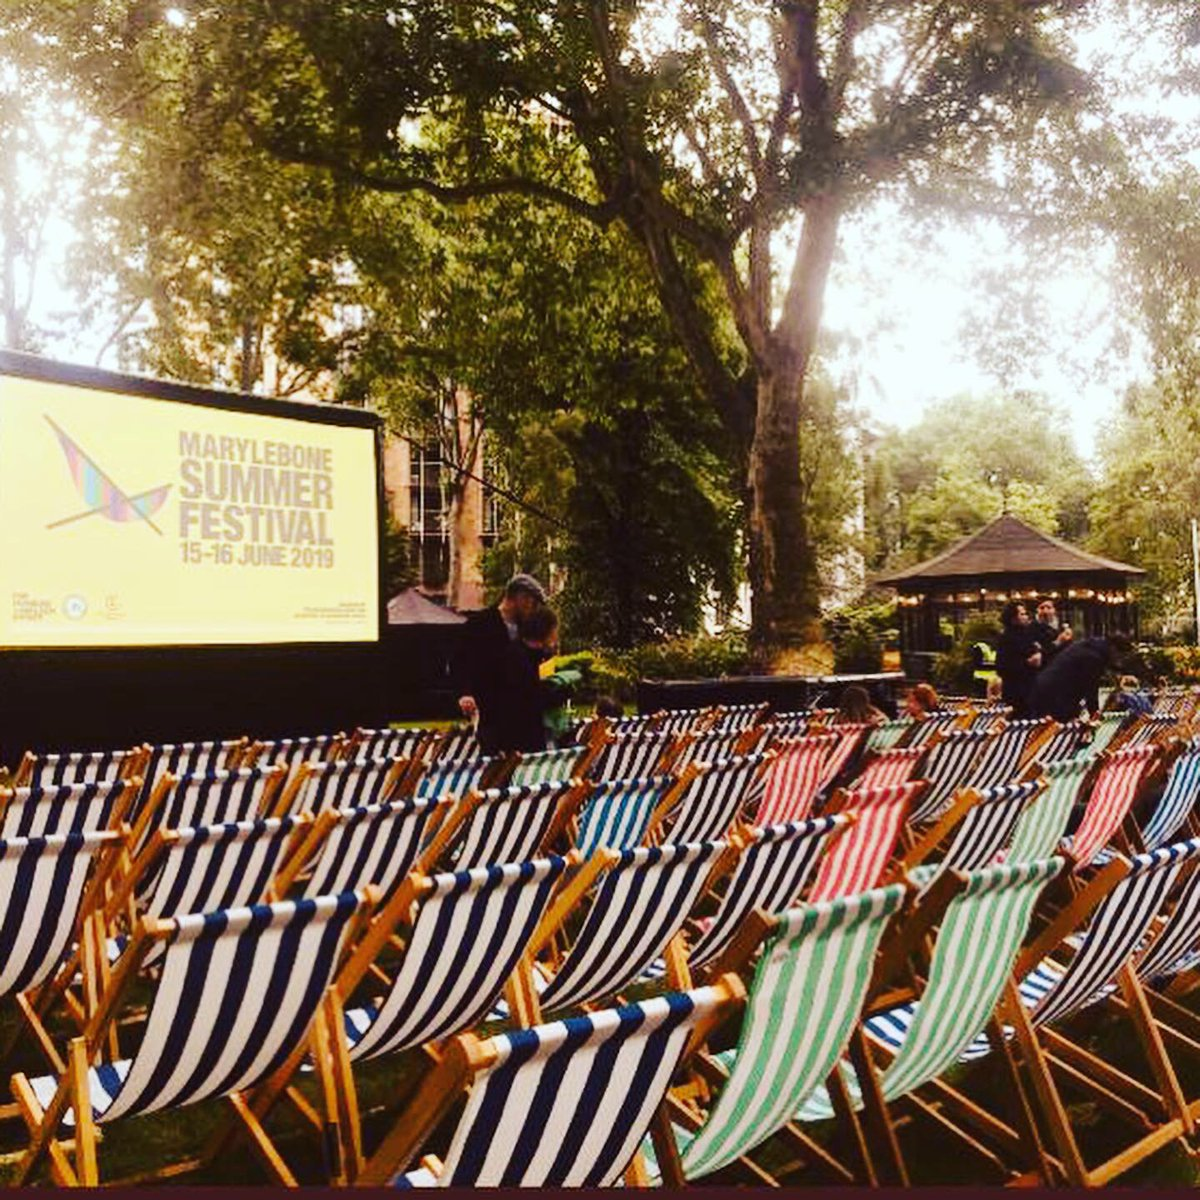 We are back from working on another fantastic weekend at #MaryleboneSummerFestival - See you again next year! #EOL #EventProfs #eventproduction #festival #fayre #Marylebone #London https://t.co/4scviSSZrg